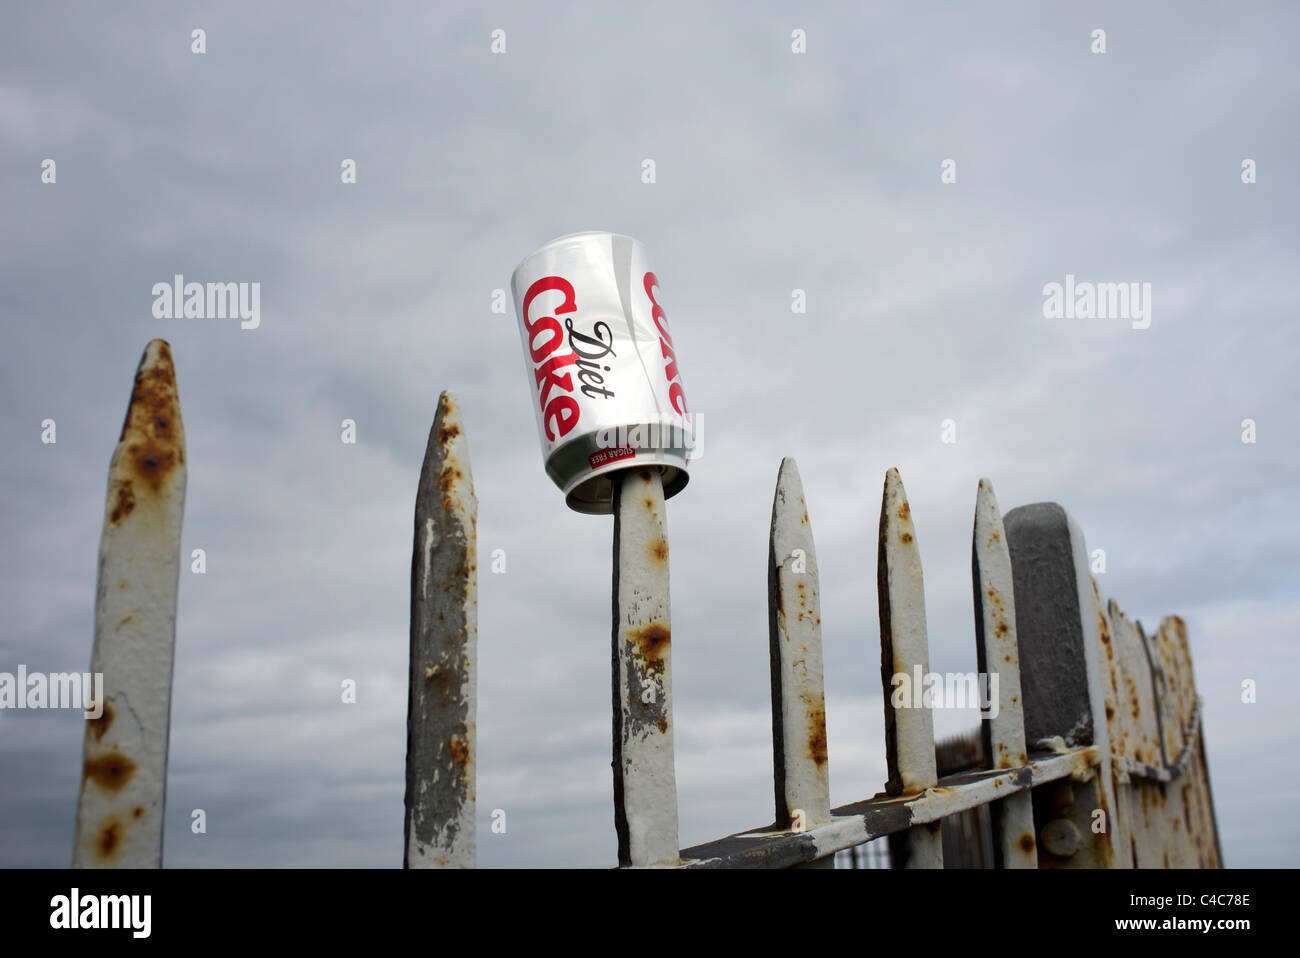 metal railings with a coke can impaled on the spikes - Stock Image